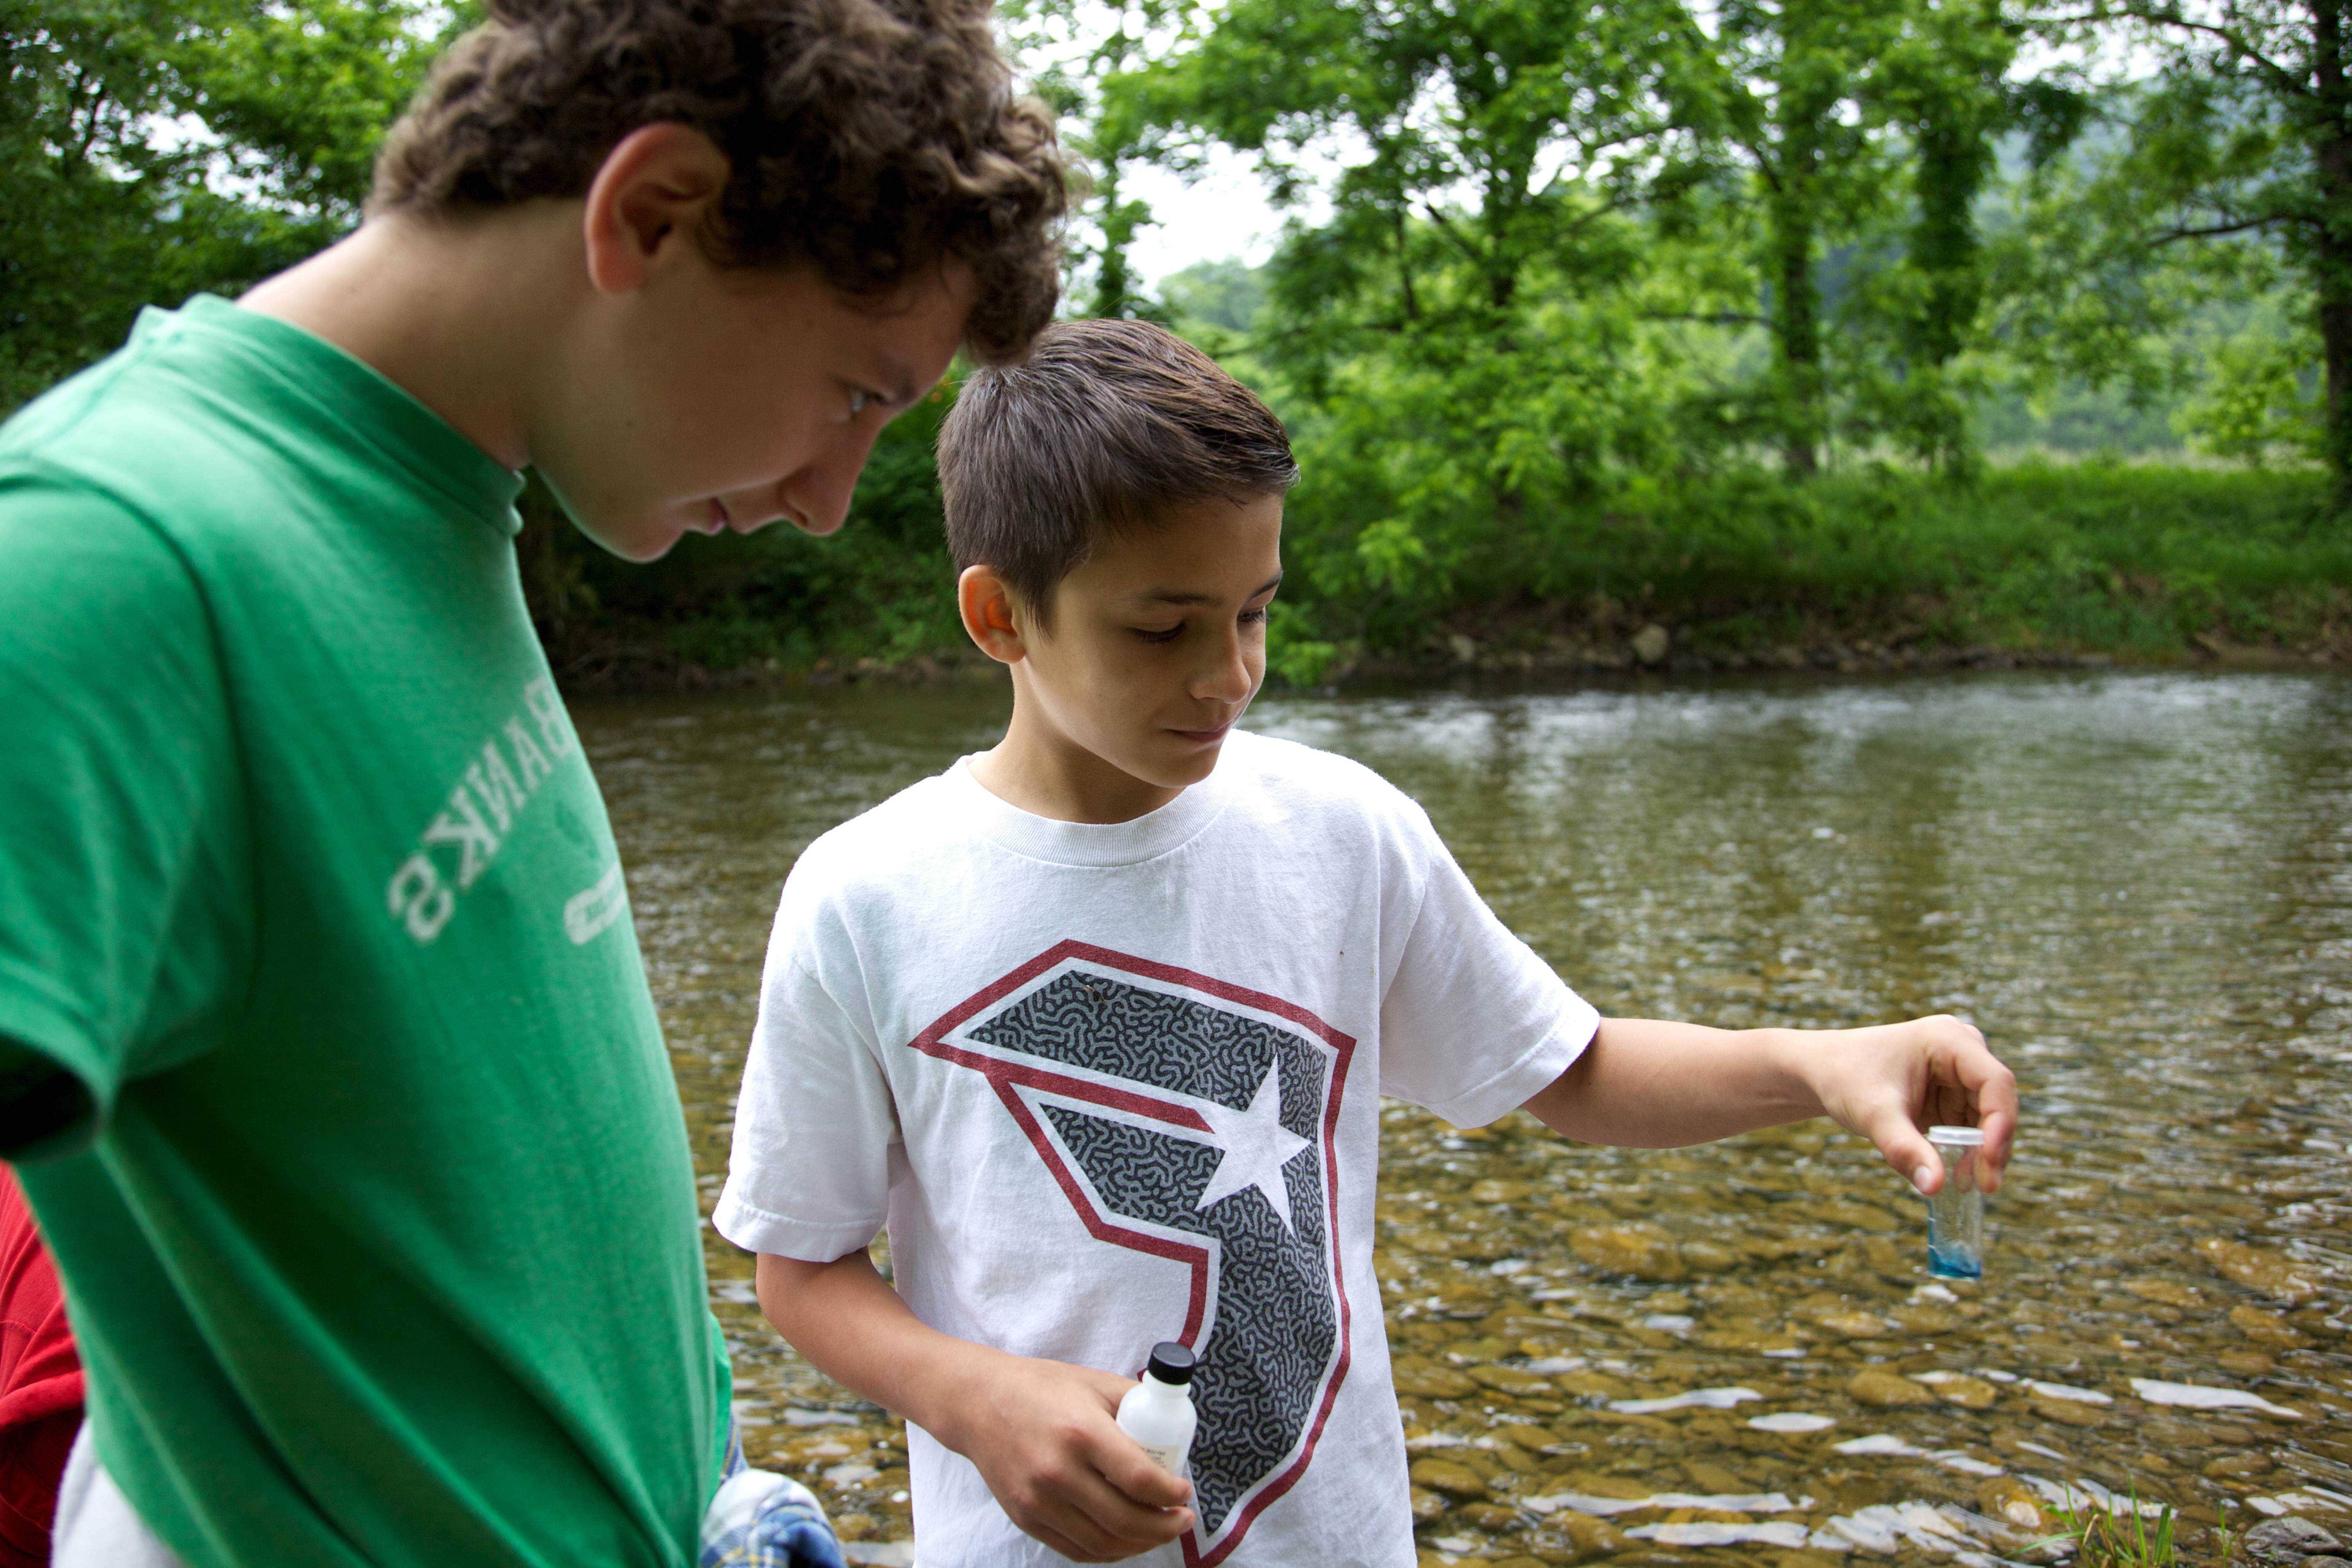 Free photograph; youth, nature, kids, water, quality, sampling